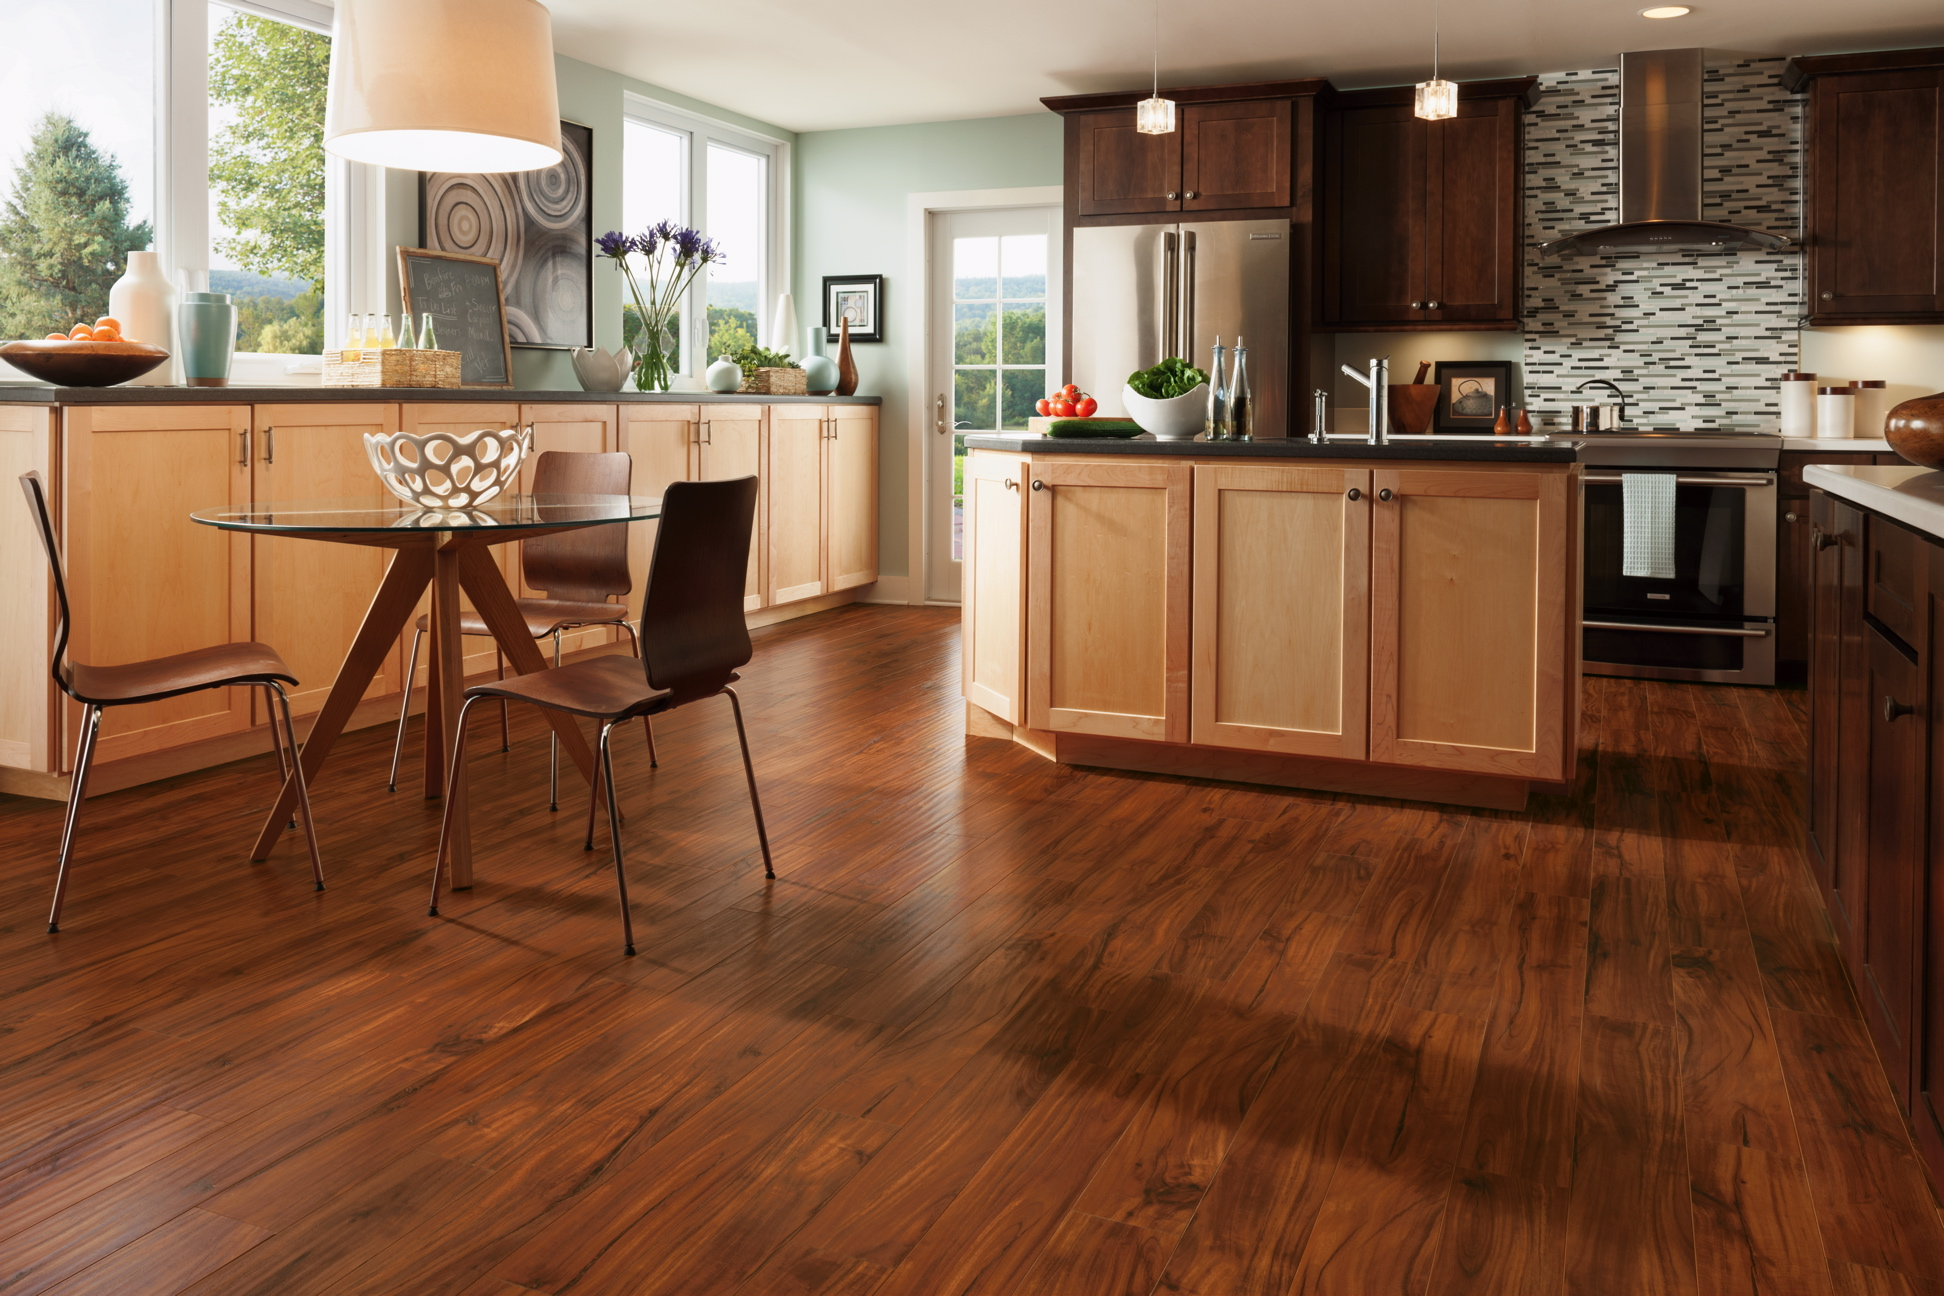 Buy quality wooden granite look pvc kitchen vinyl flooring in dubai abu dhabi